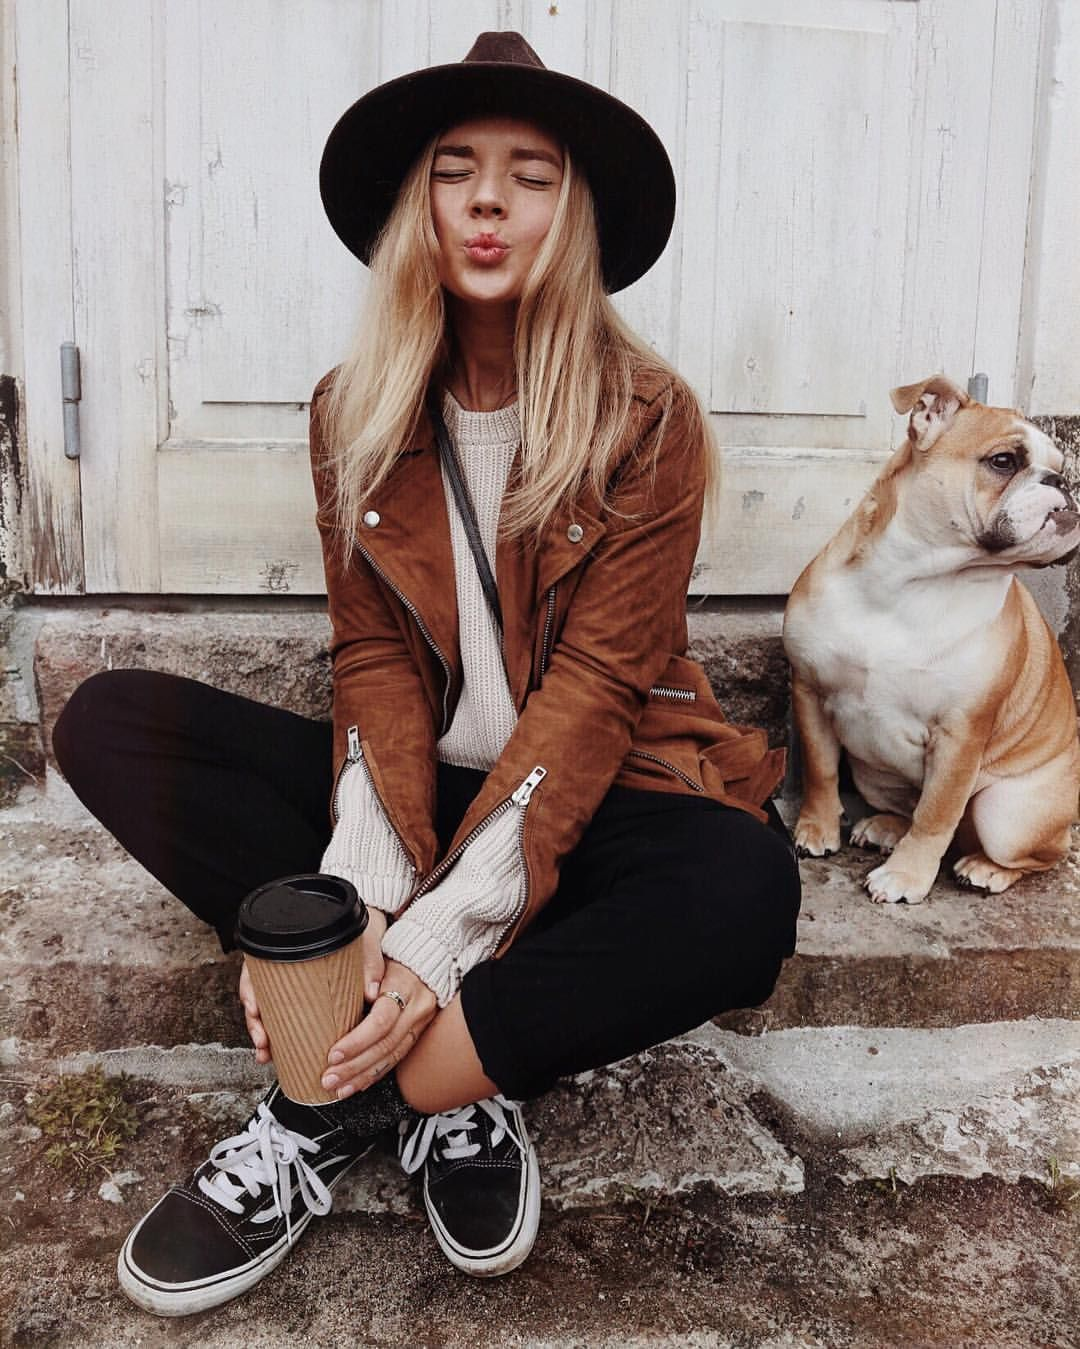 b6a906e4a49 black skinnies + sweater + brown leather jacket + sneakers + crossbody +  floppy hat